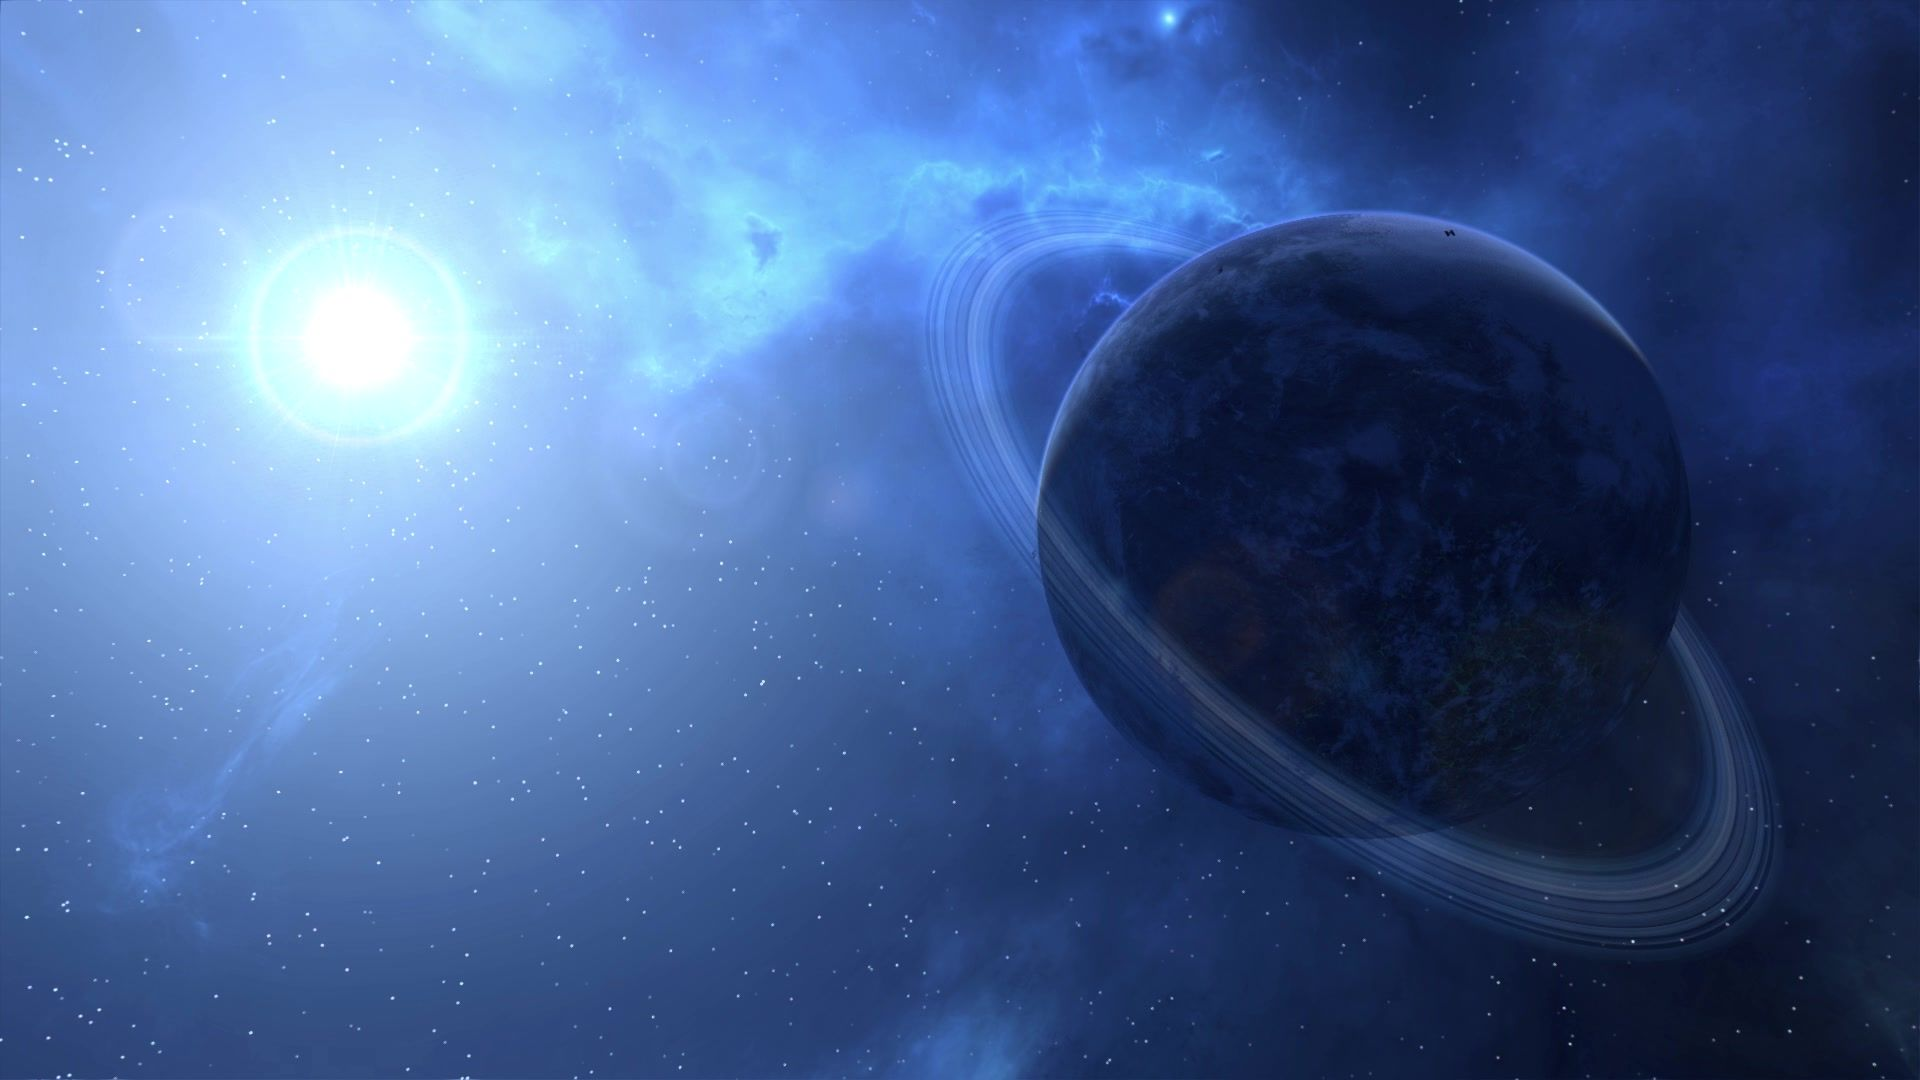 Animated Universe Wallpapers Top Free Animated Universe Backgrounds Wallpaperaccess